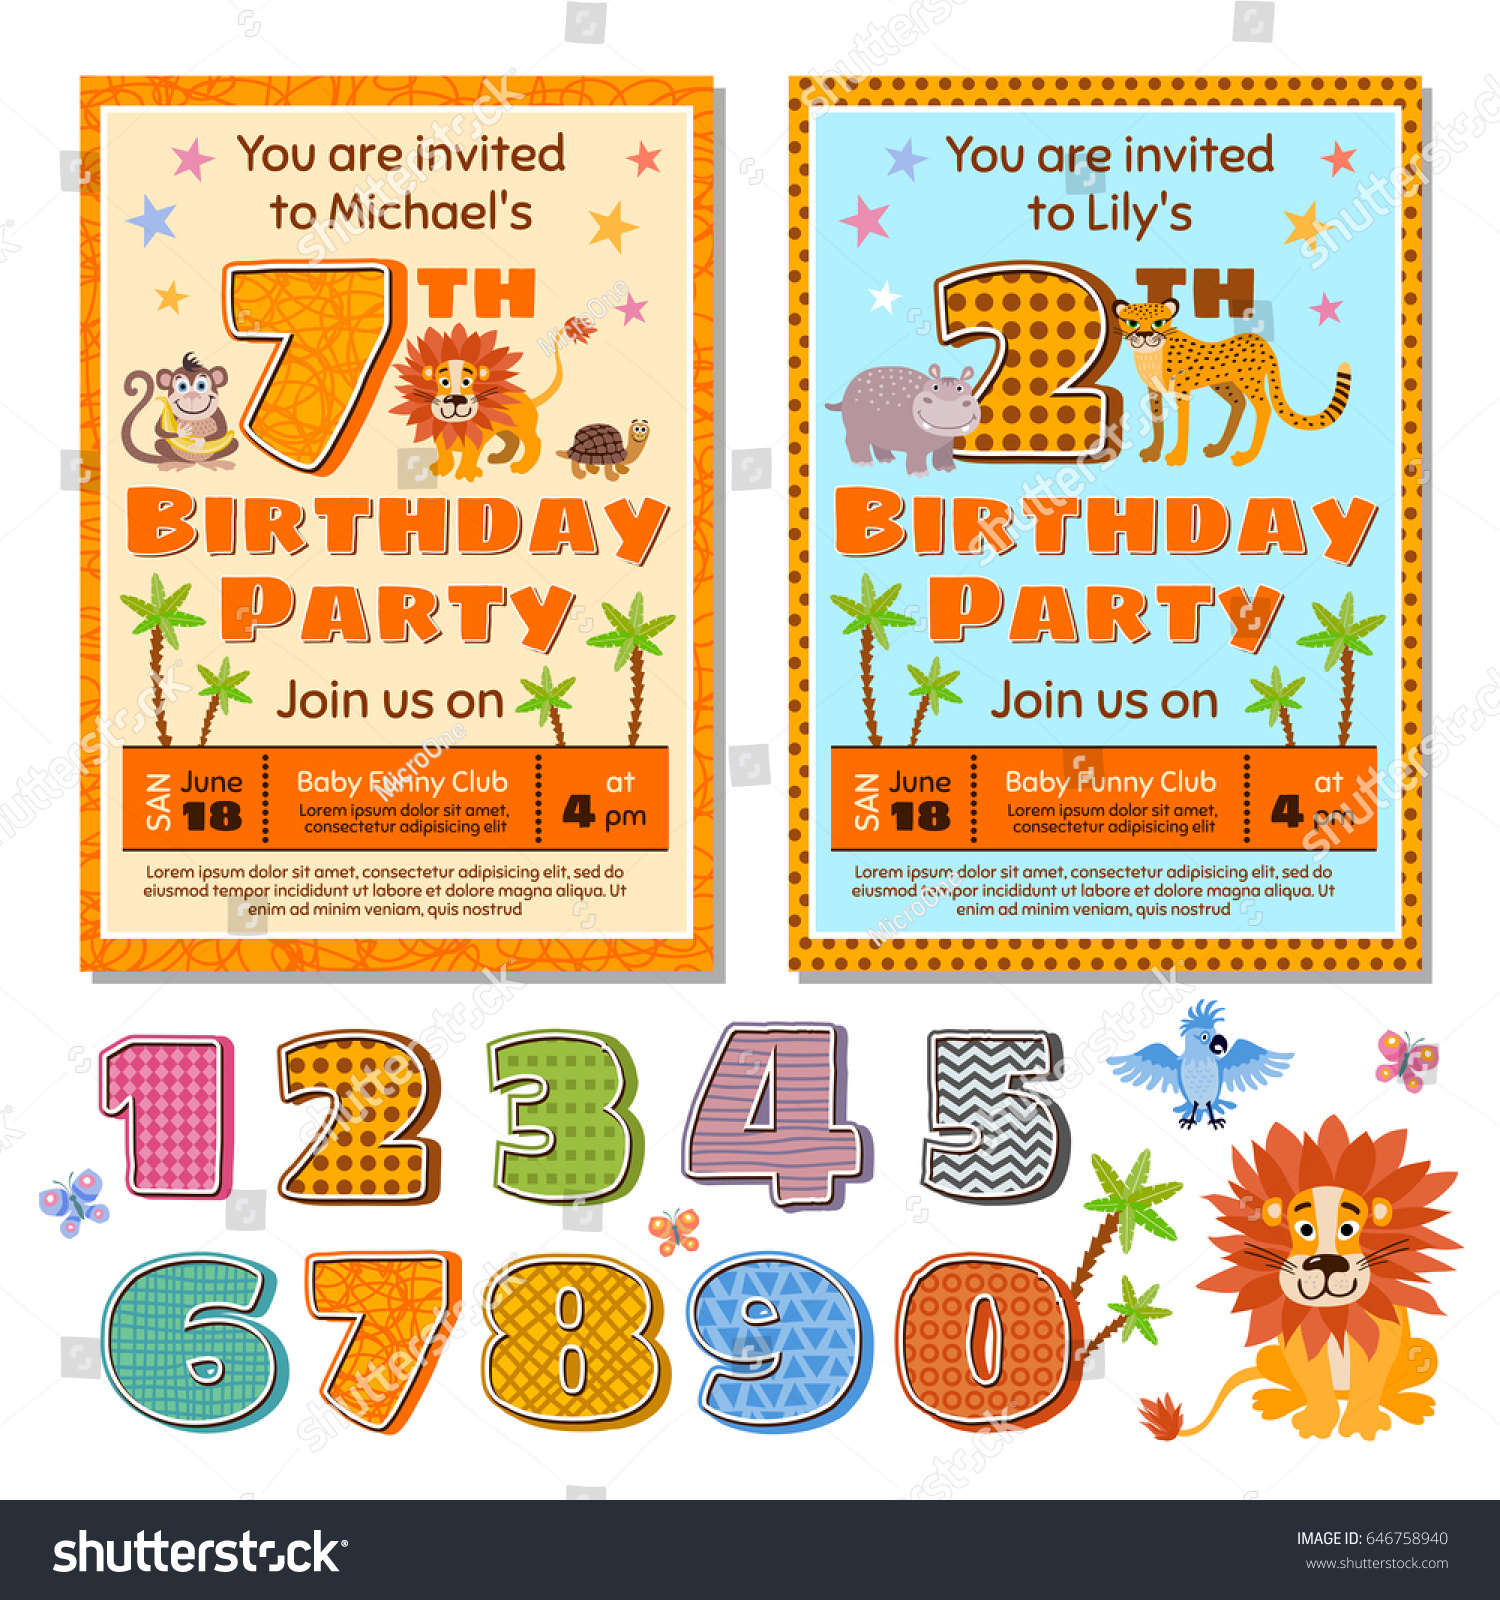 Children Birthday Party Invitation Card Vector Stock Vector ...